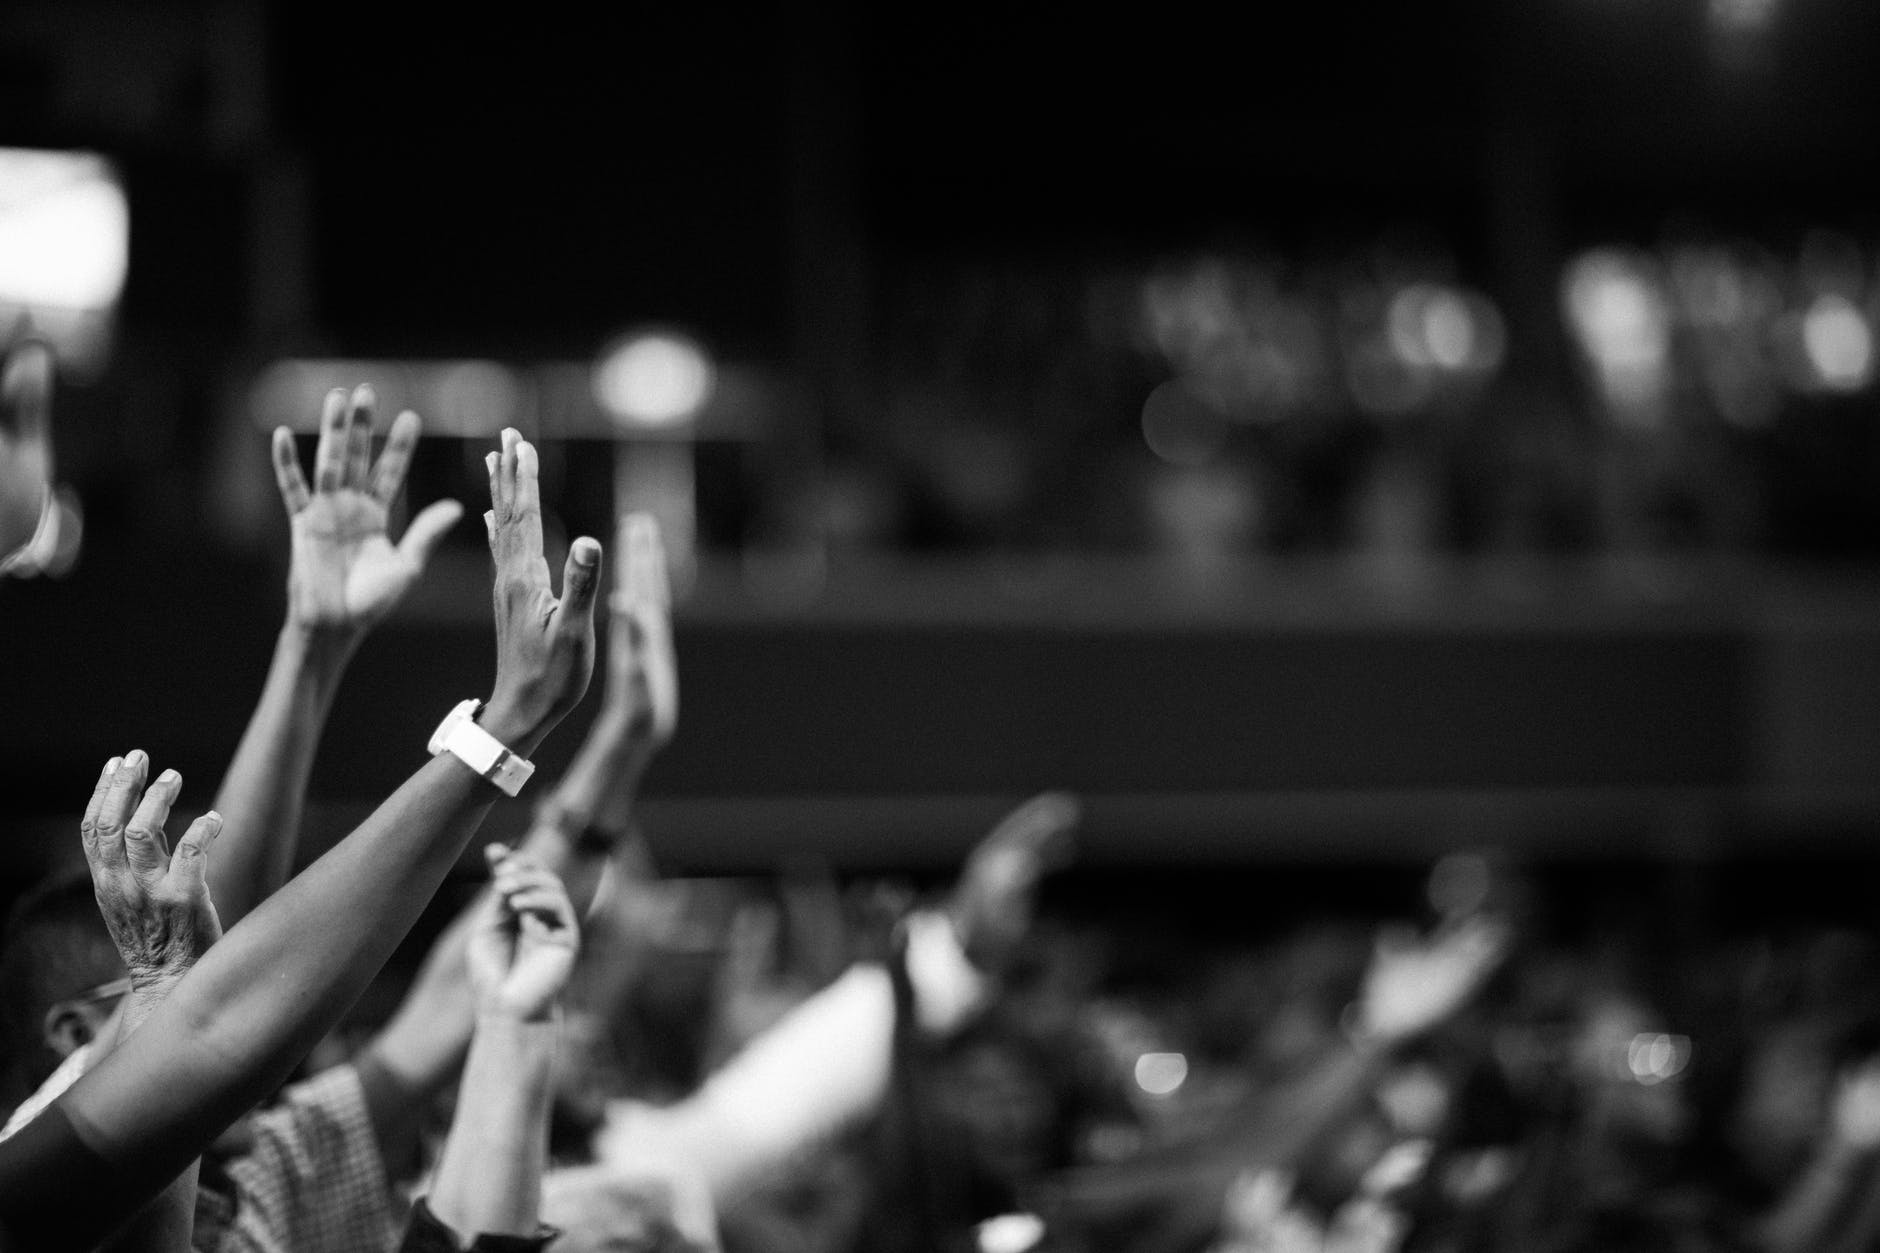 A black and white image of a crowd of people at a concert with their hands in the air.